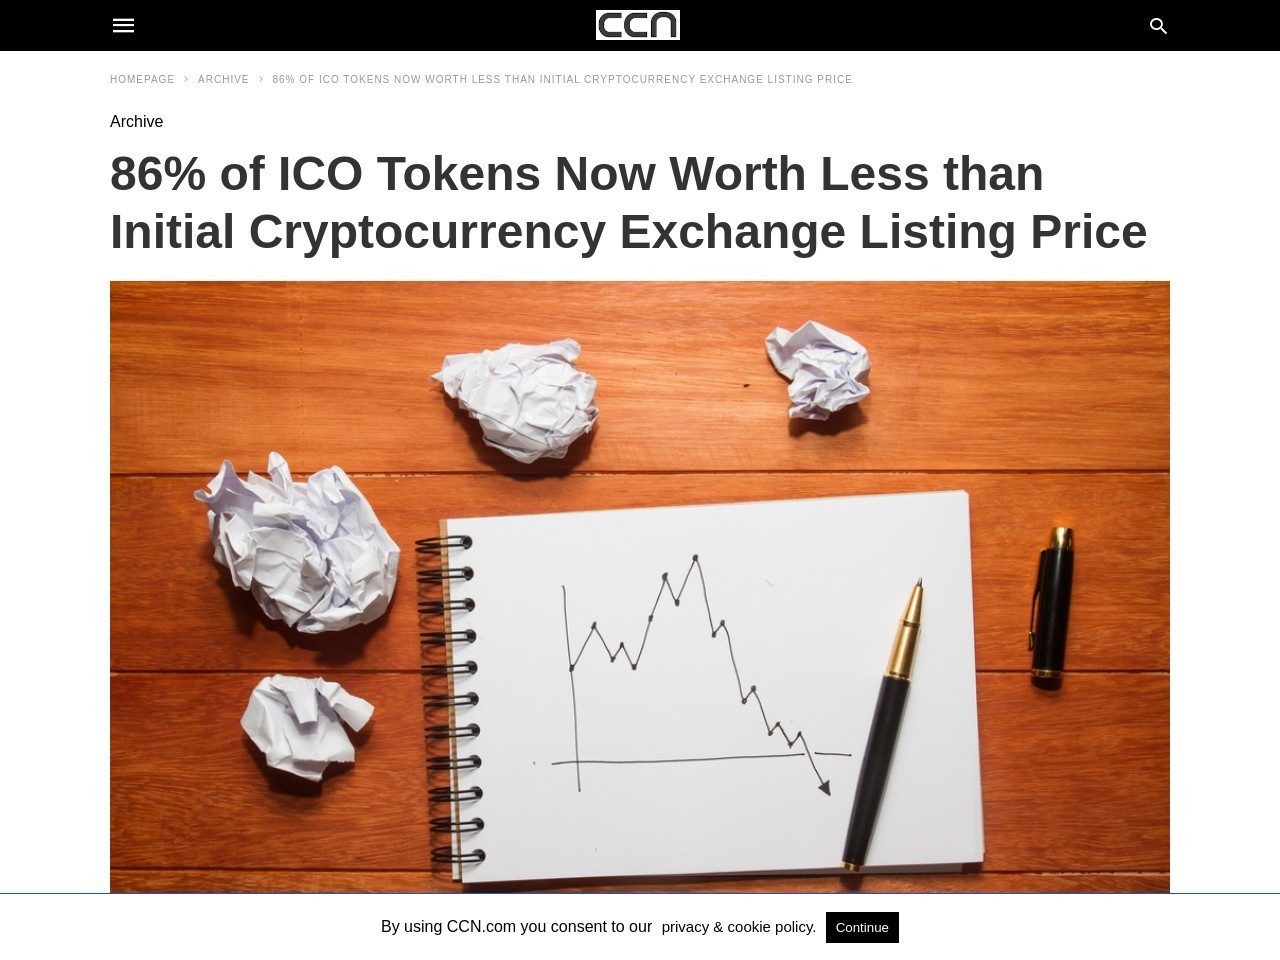 86% of ICO Tokens Now Worth Less than Initial Cryptocurrency Exchange Listing Price